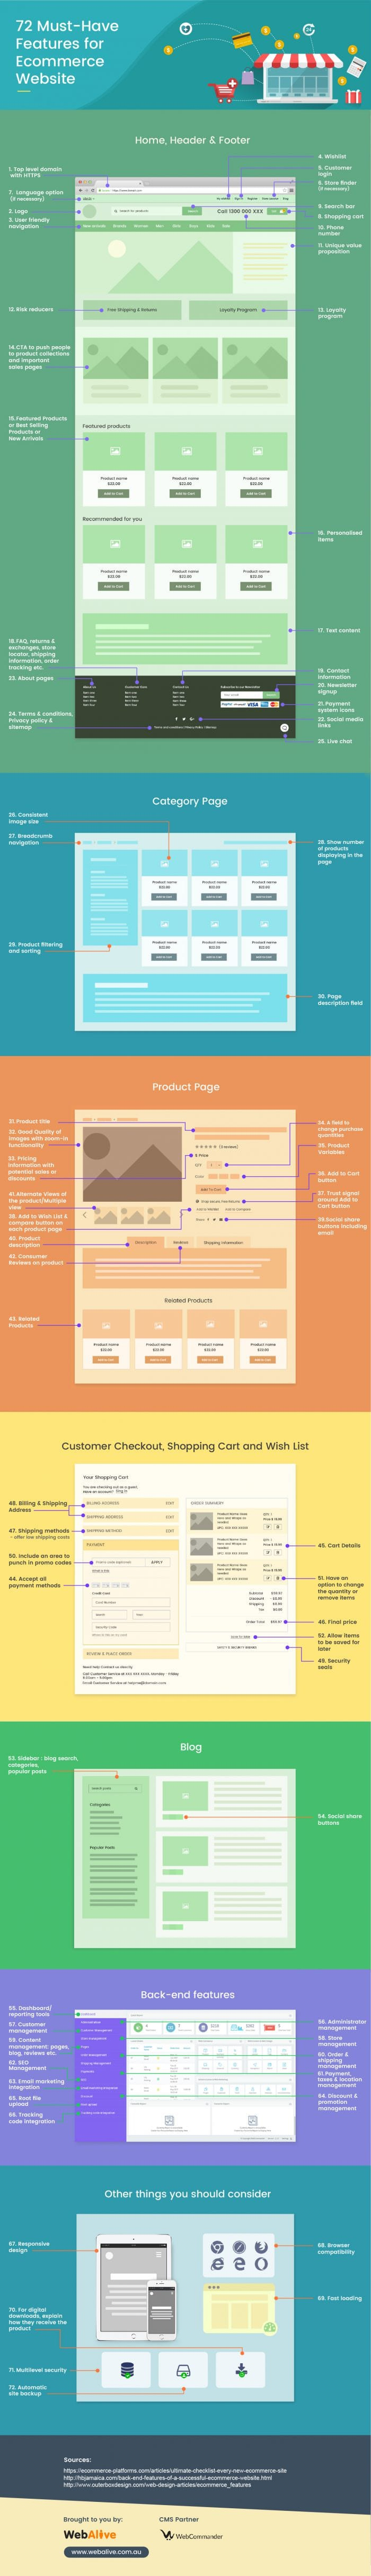 ecommerce website features infographic